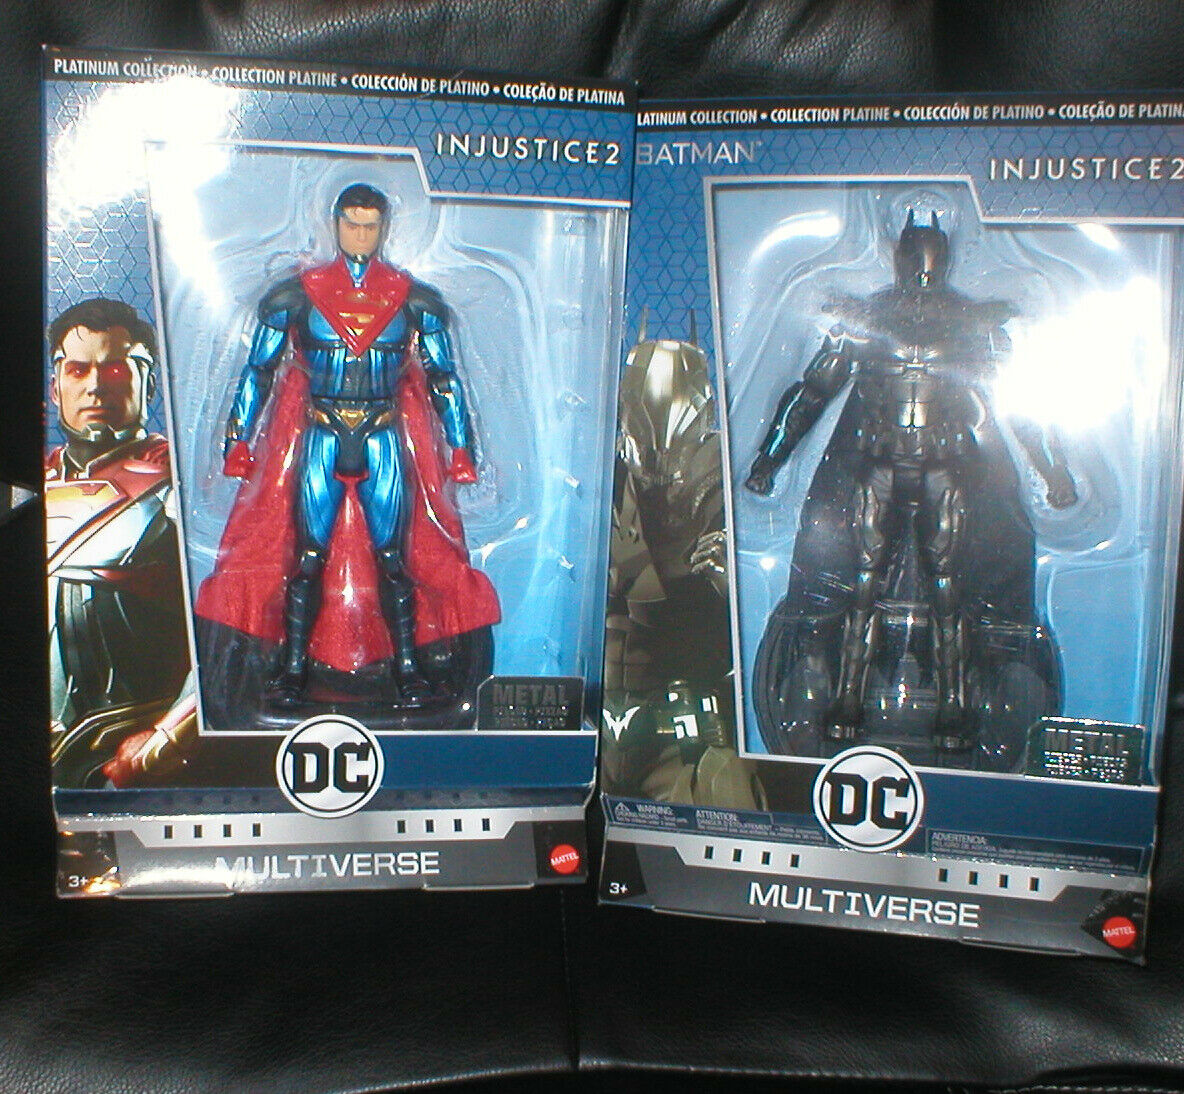 DC MULTIVERSE PLATINUM COLLECTION SUPERMAN & BATMAN INJUSTICE FIGURES , UNOPENED